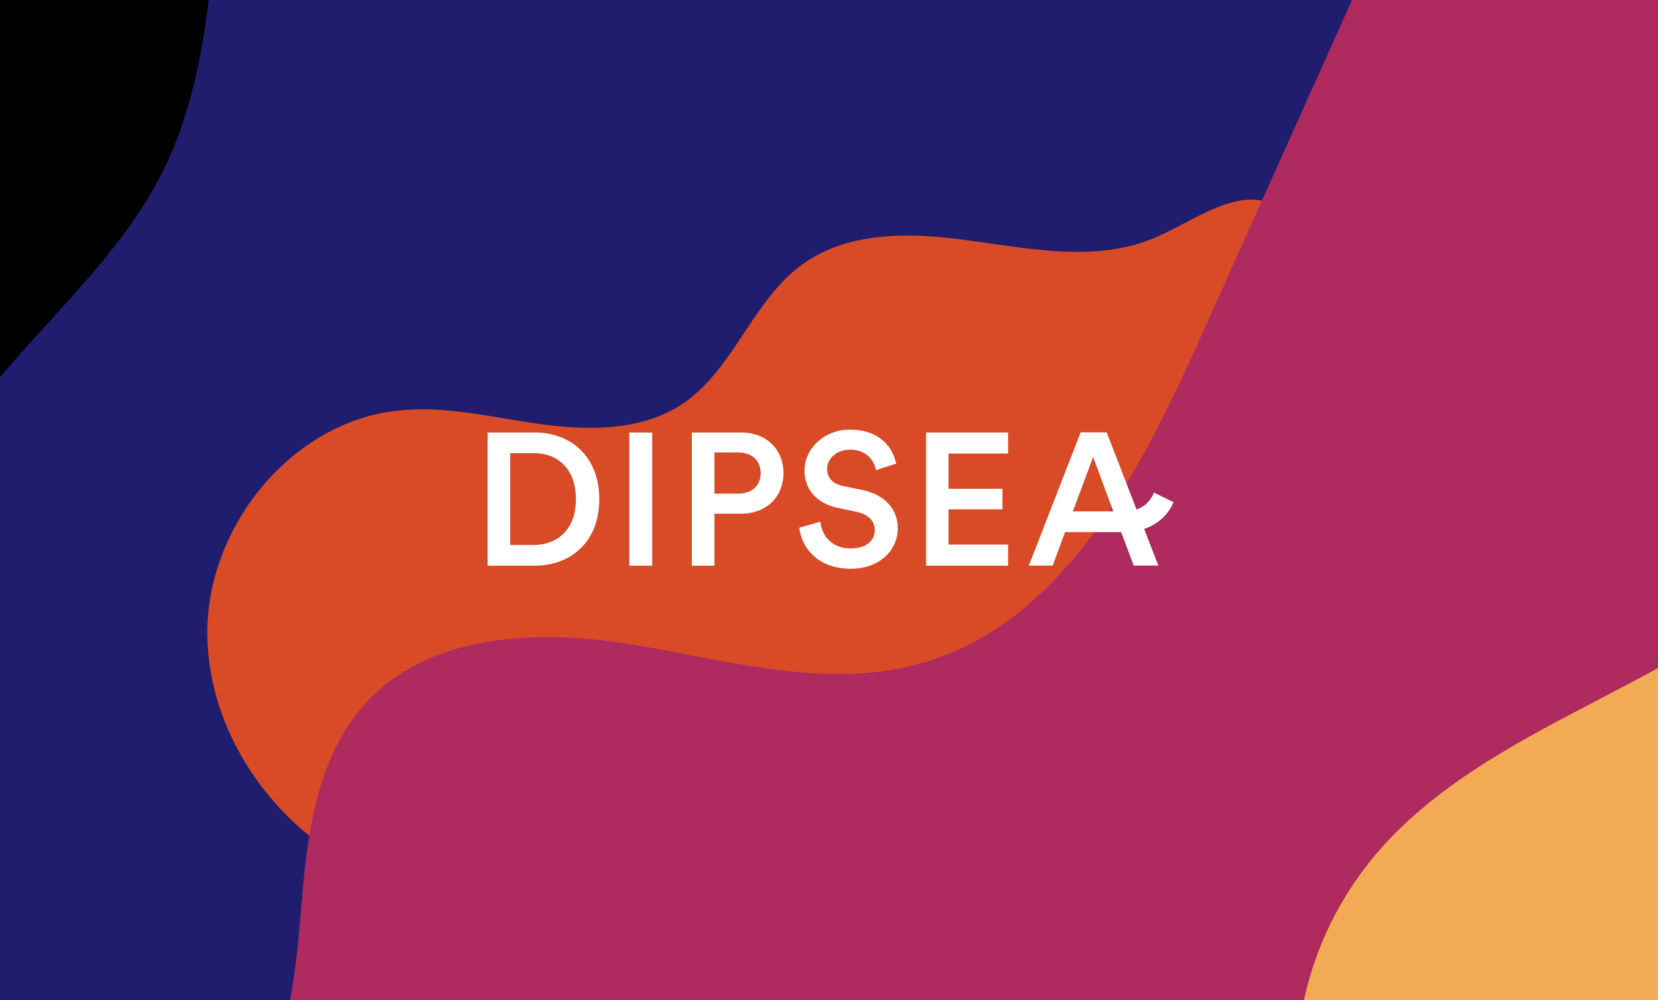 Dipsea Blog: Dipsea meet world